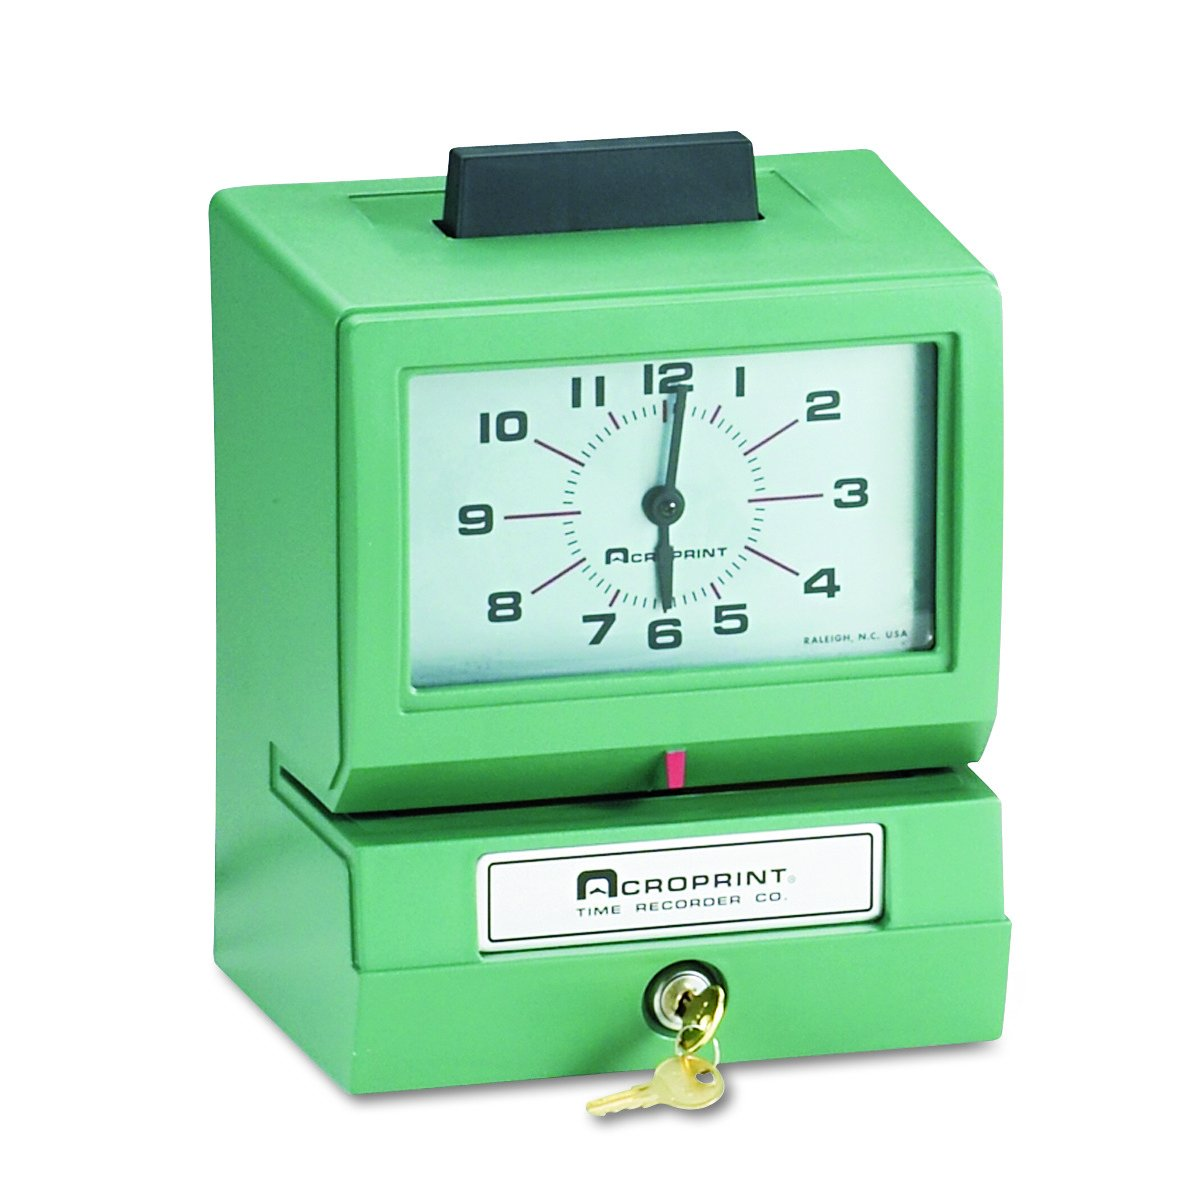 Amazon.com : Acroprint 011070413 Model 125 Analog Manual Print Time Clock with Month/Date/0-23 Hours/Minutes : Office Products